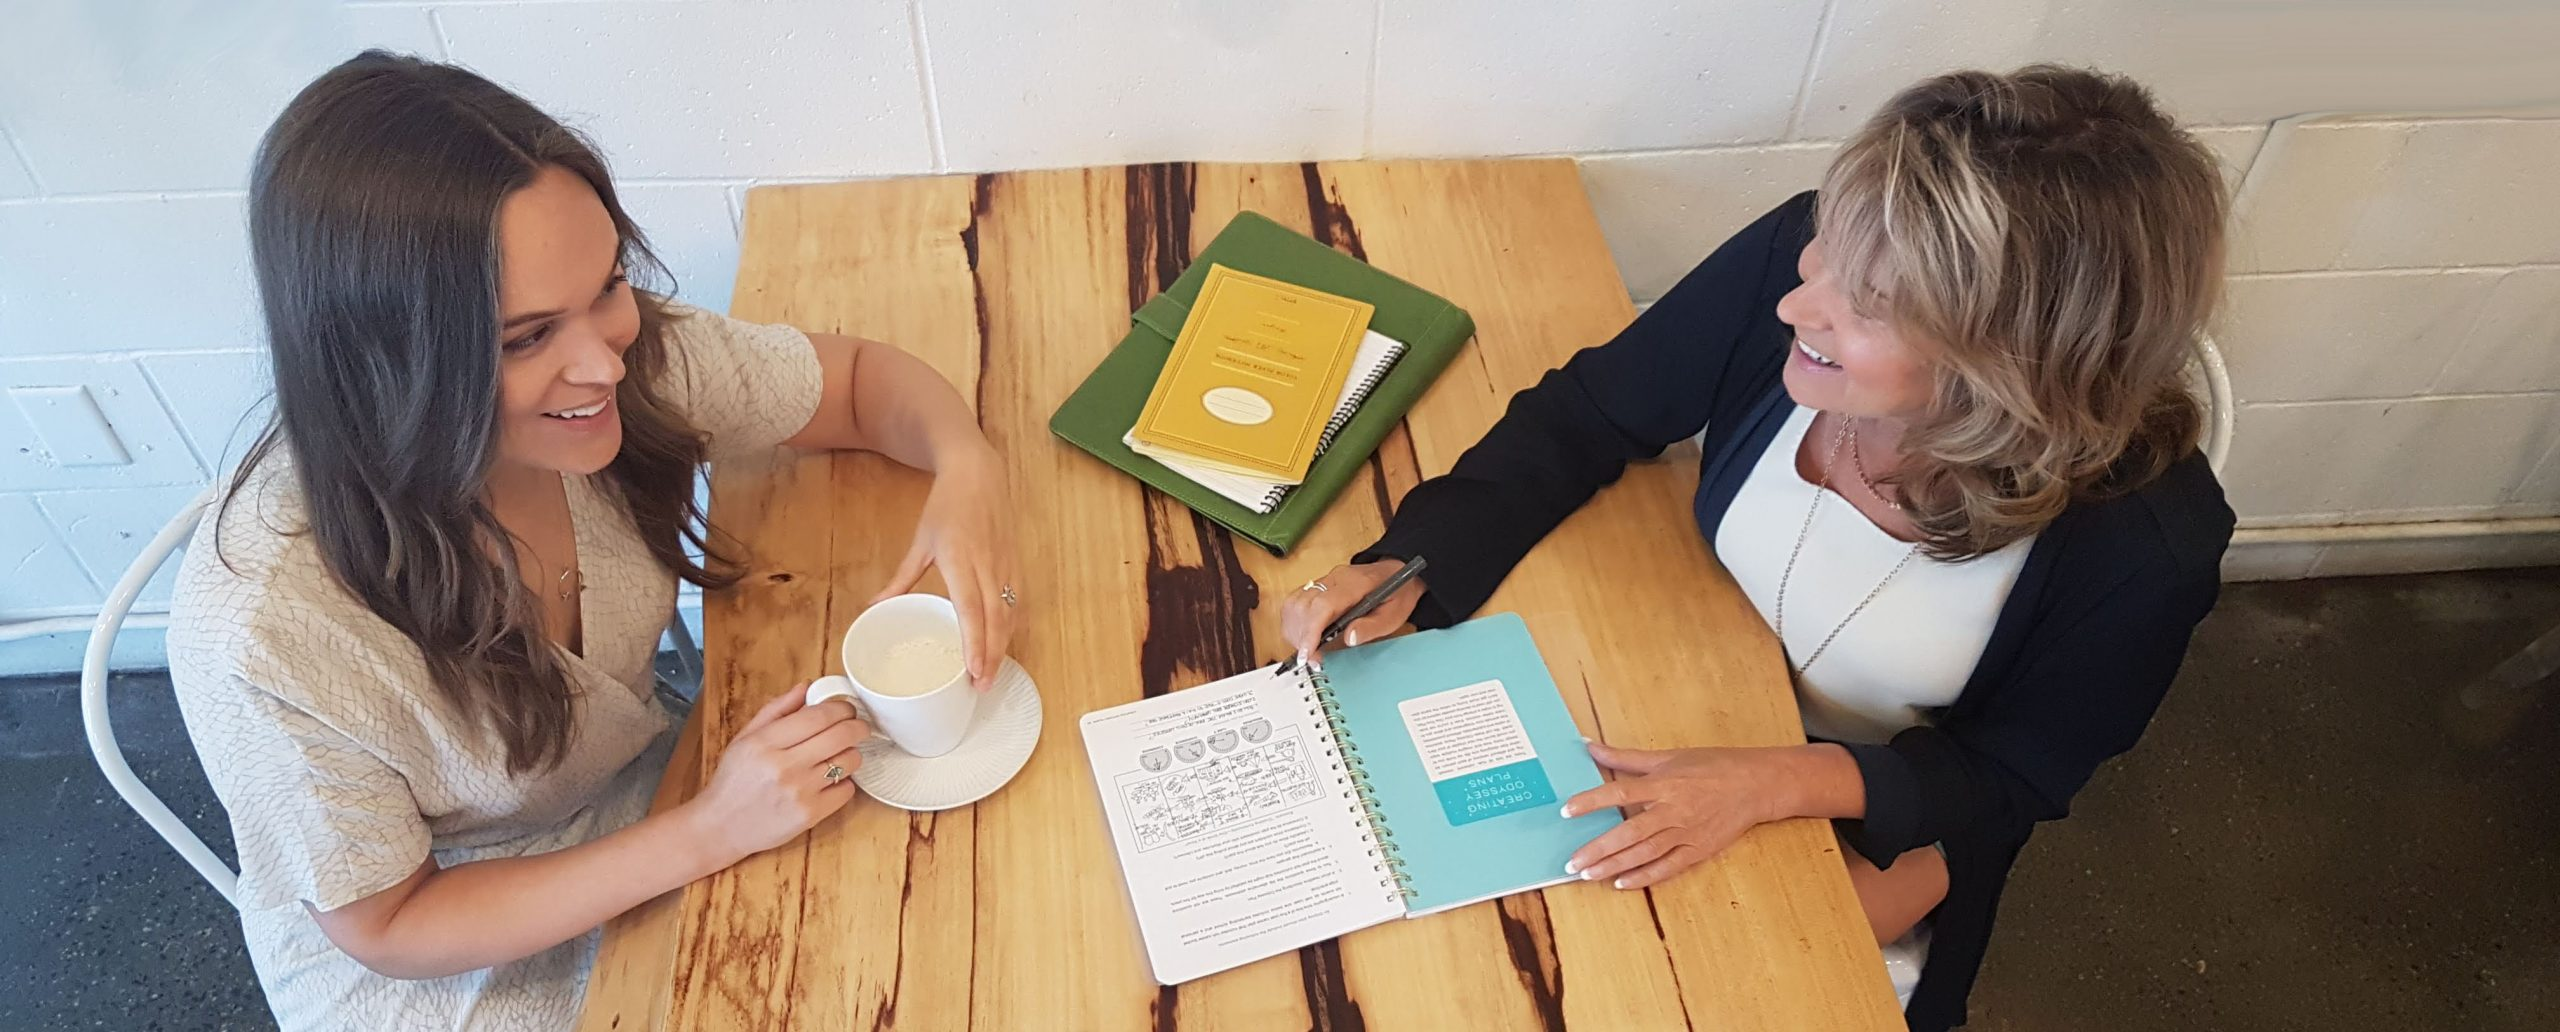 How To Start A Coaching Or Consulting Business